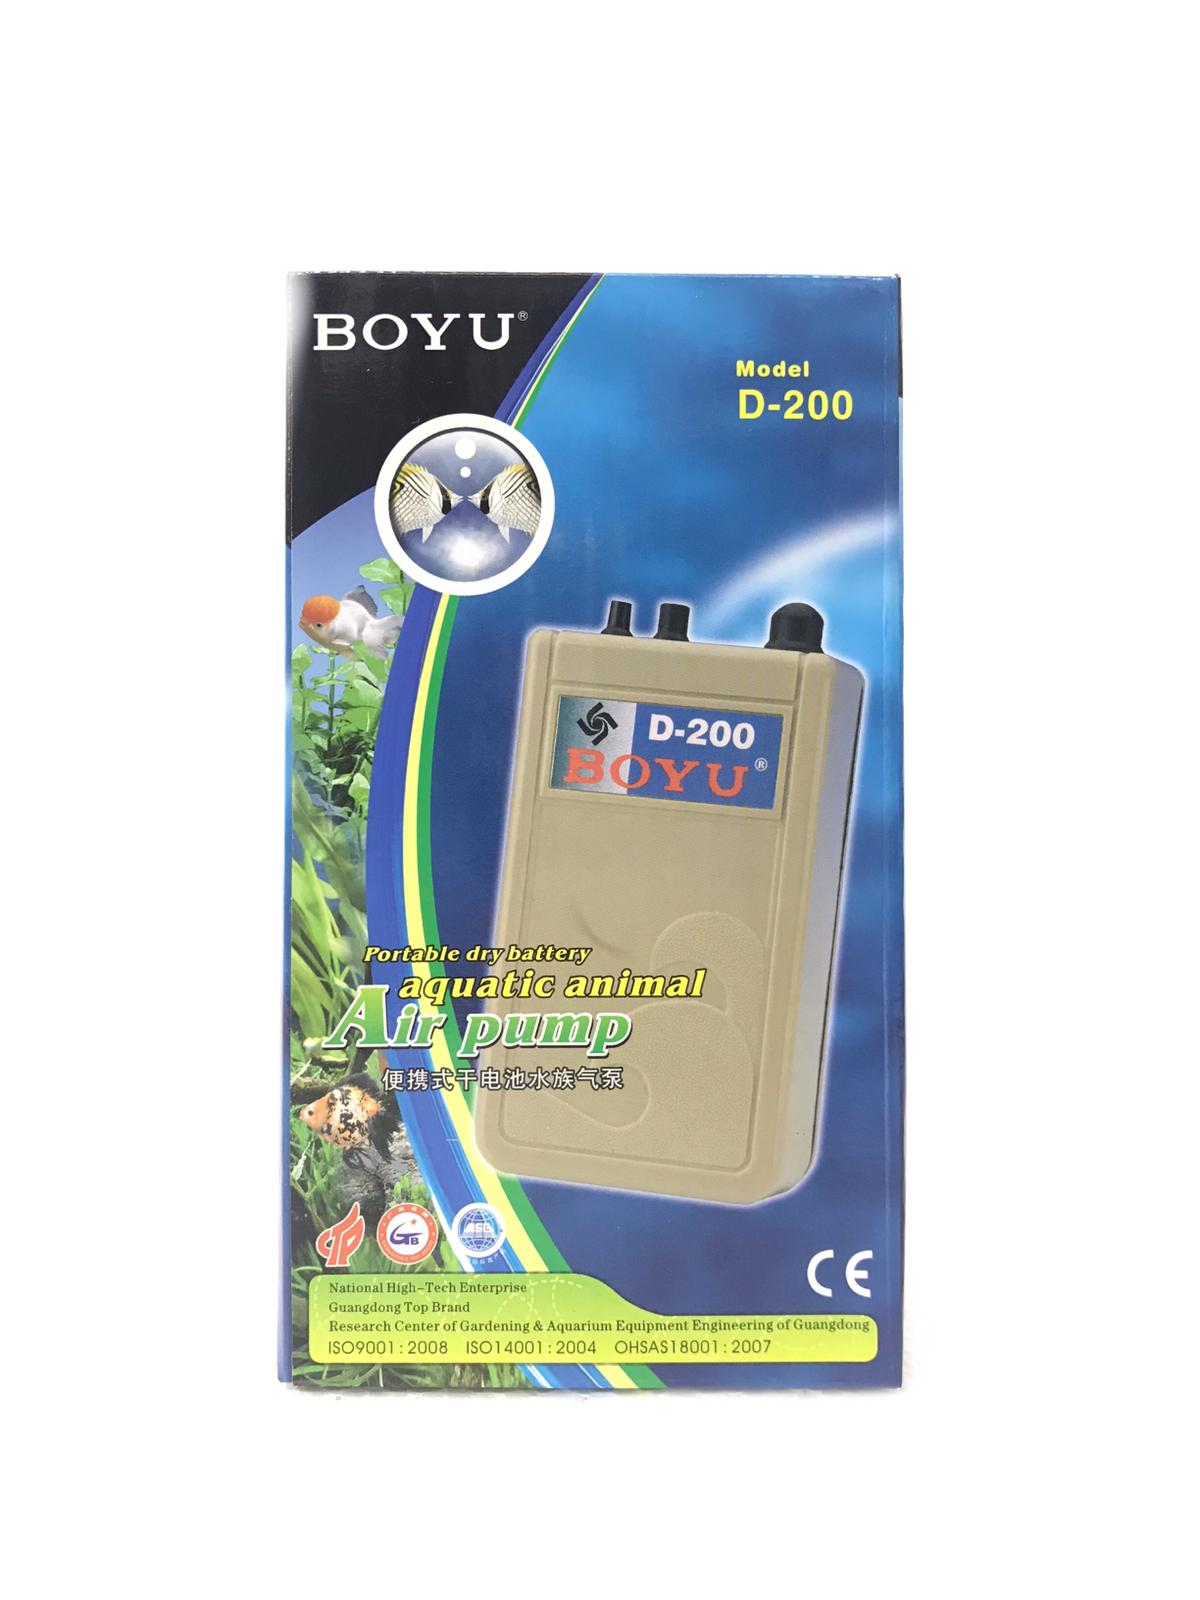 Boyu Portable Dry Battery Air Pump